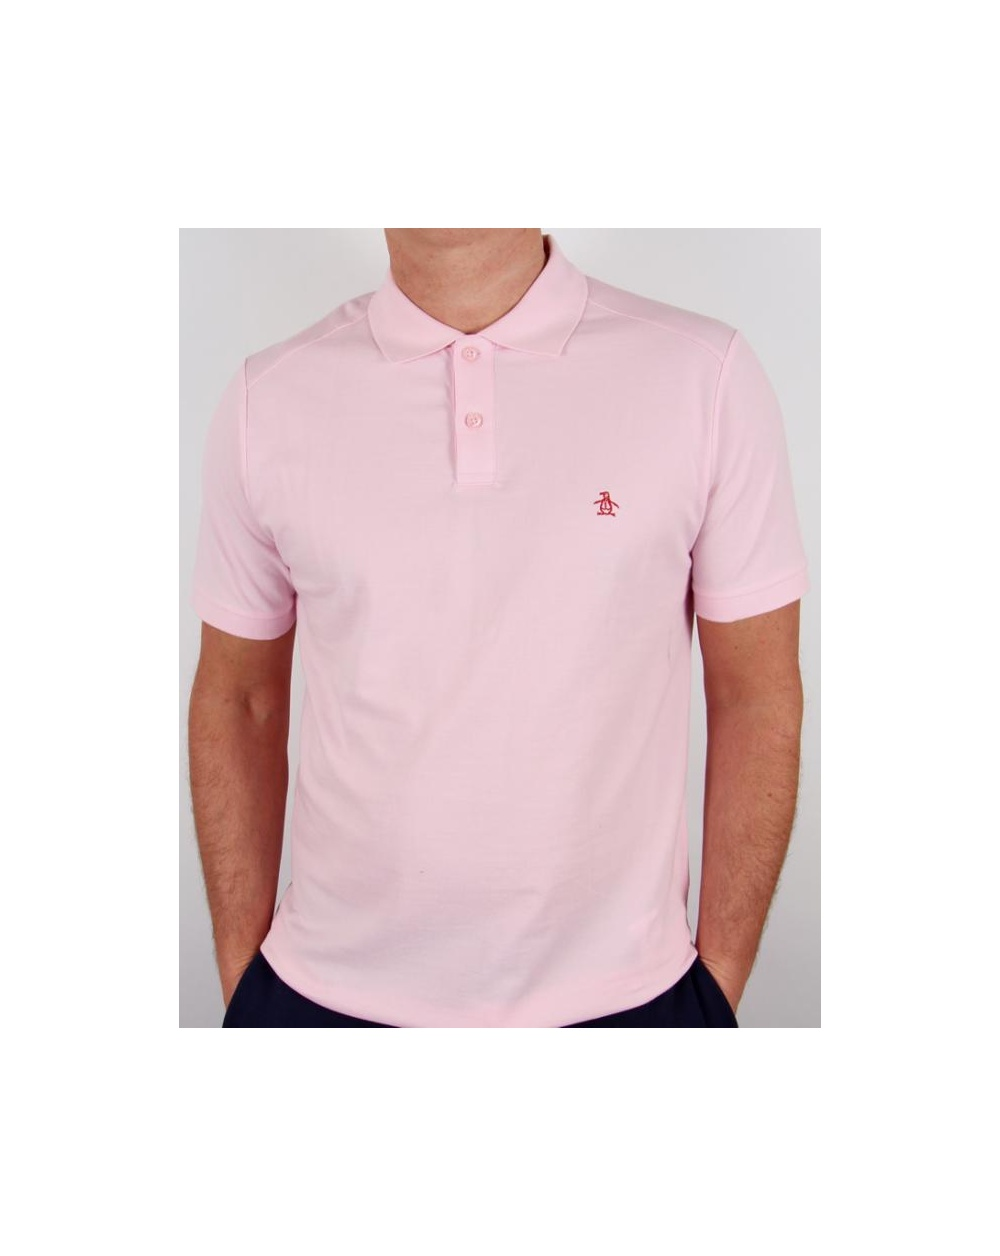 Penguin Polo Shirts Sale Uk Bcd Tofu House